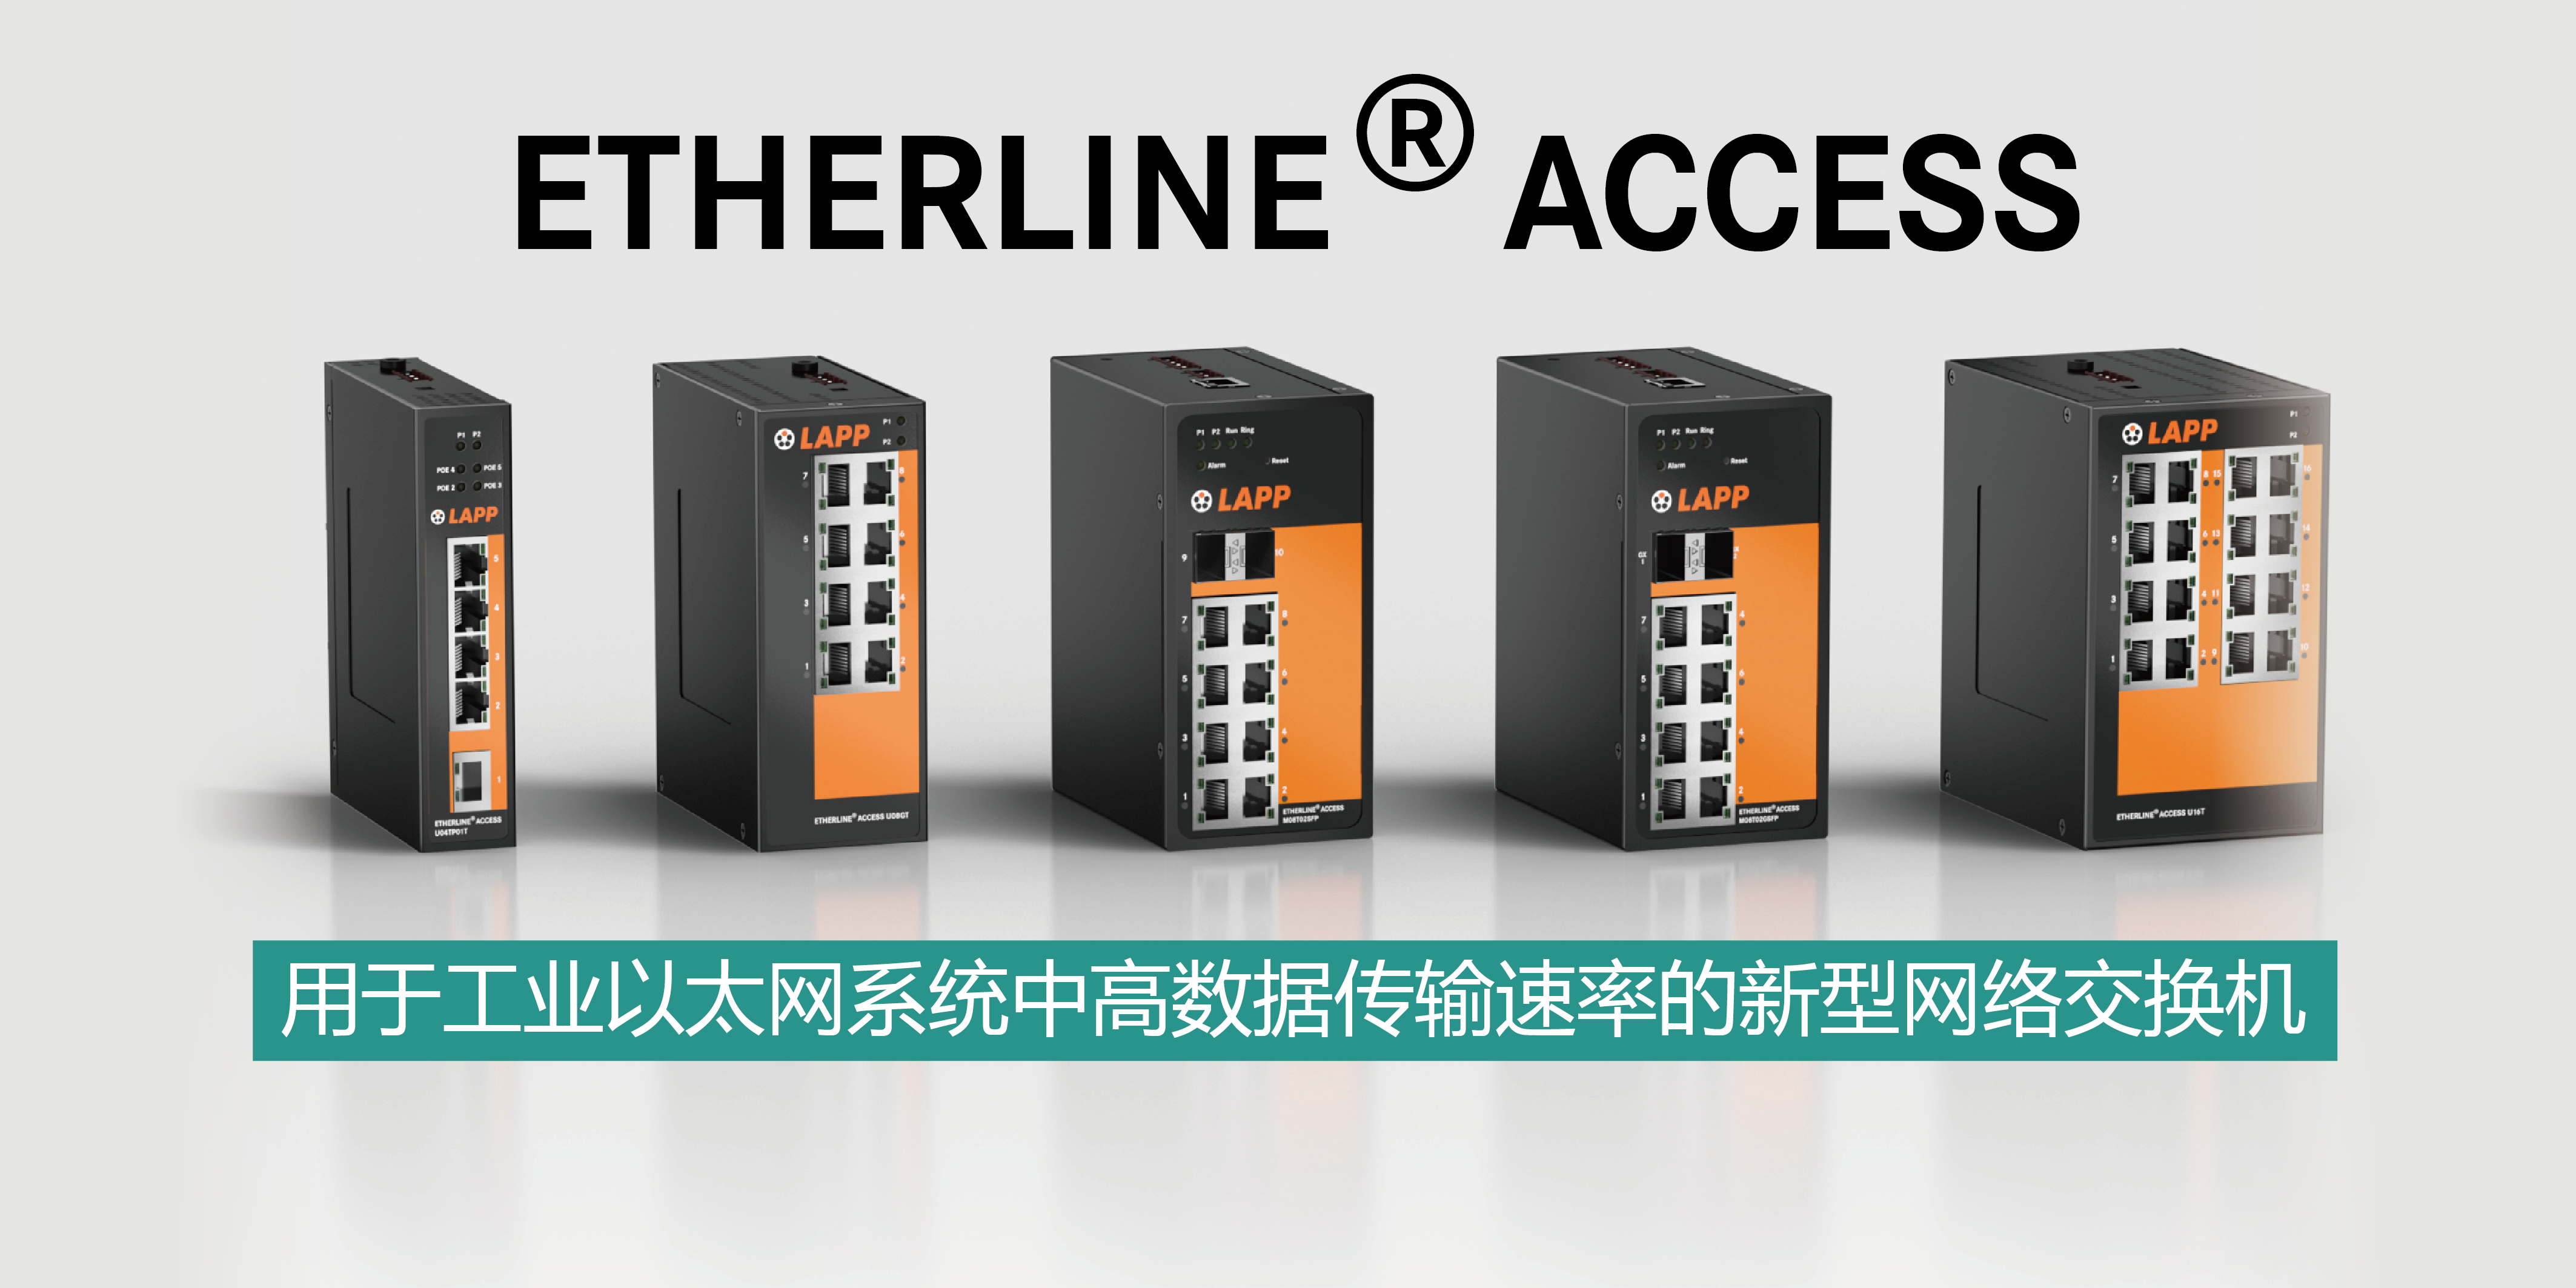 etherline access